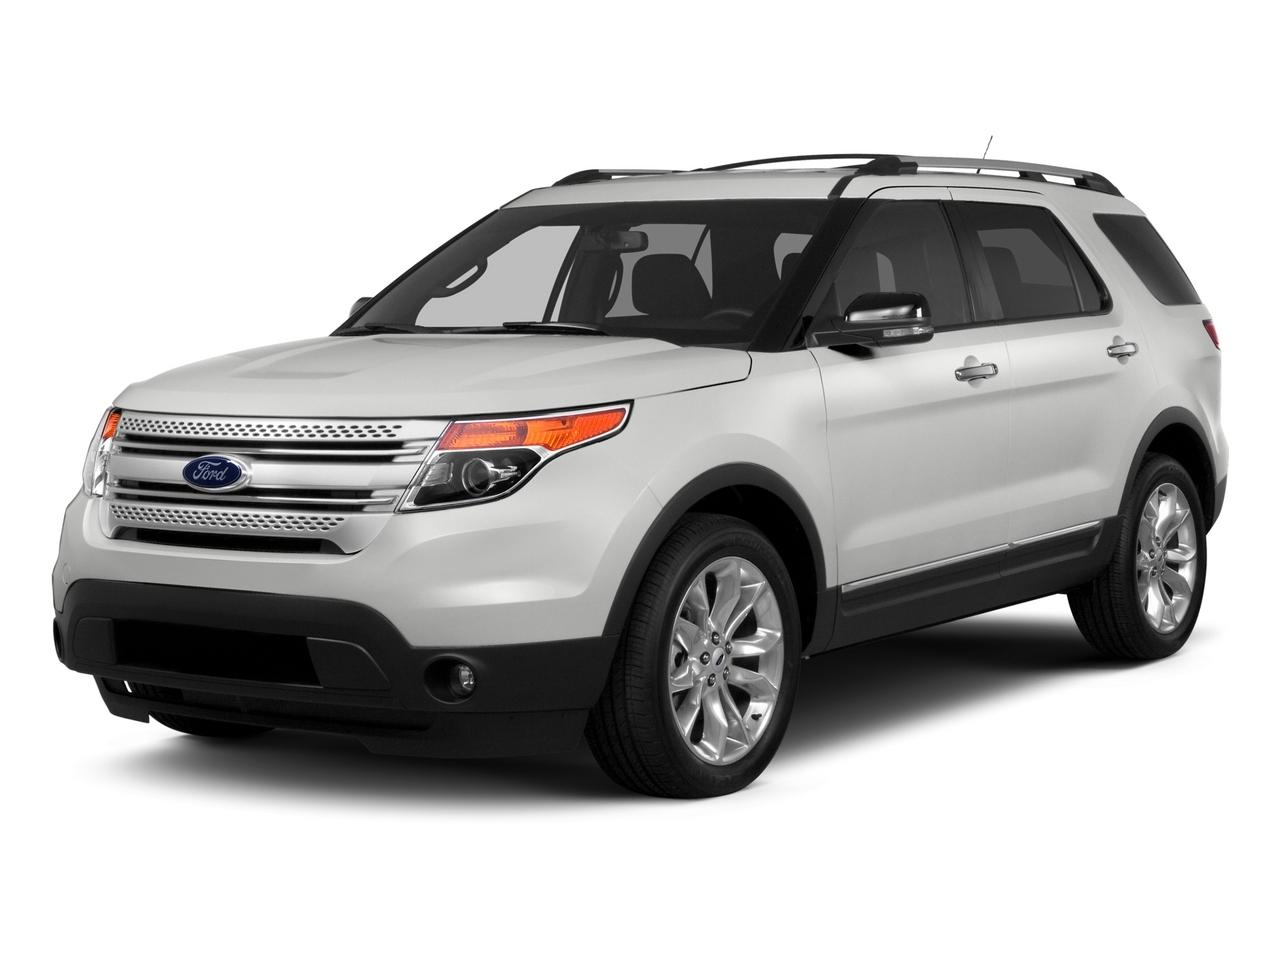 2015 Ford Explorer Vehicle Photo in Boyertown, PA 19512